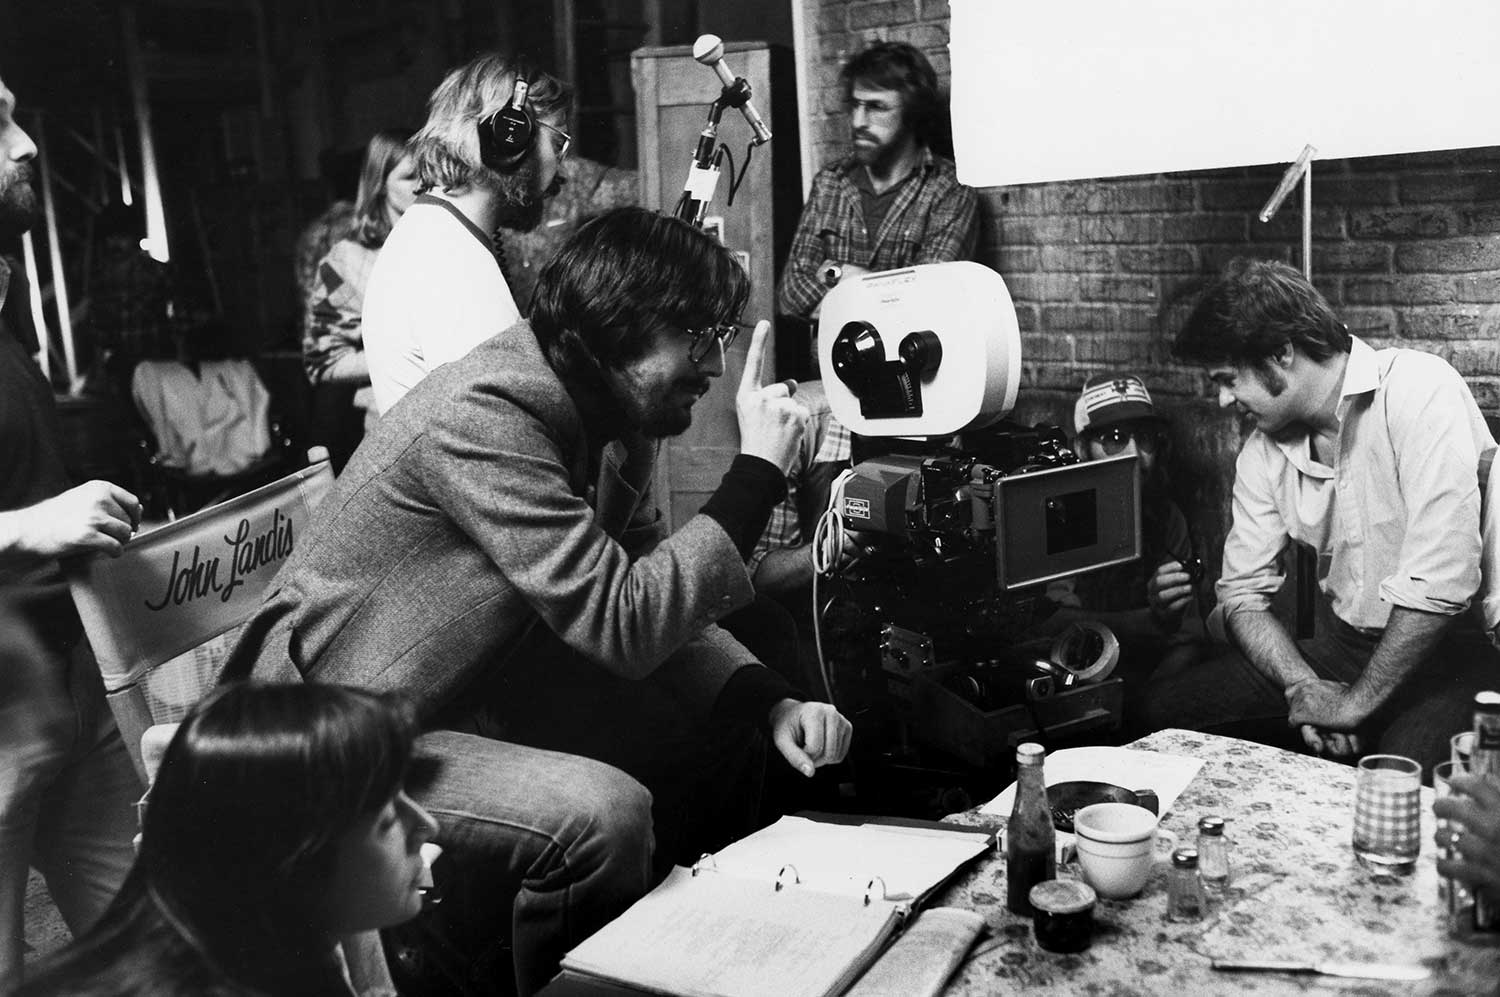 Seen here during production on THE BLUES BROTHERS, director John Landis had a major success at Universal with NATIONAL LAMPOON'S ANIMAL HOUSE and also helmed THE KENTUCKY FRIED MOVIE.